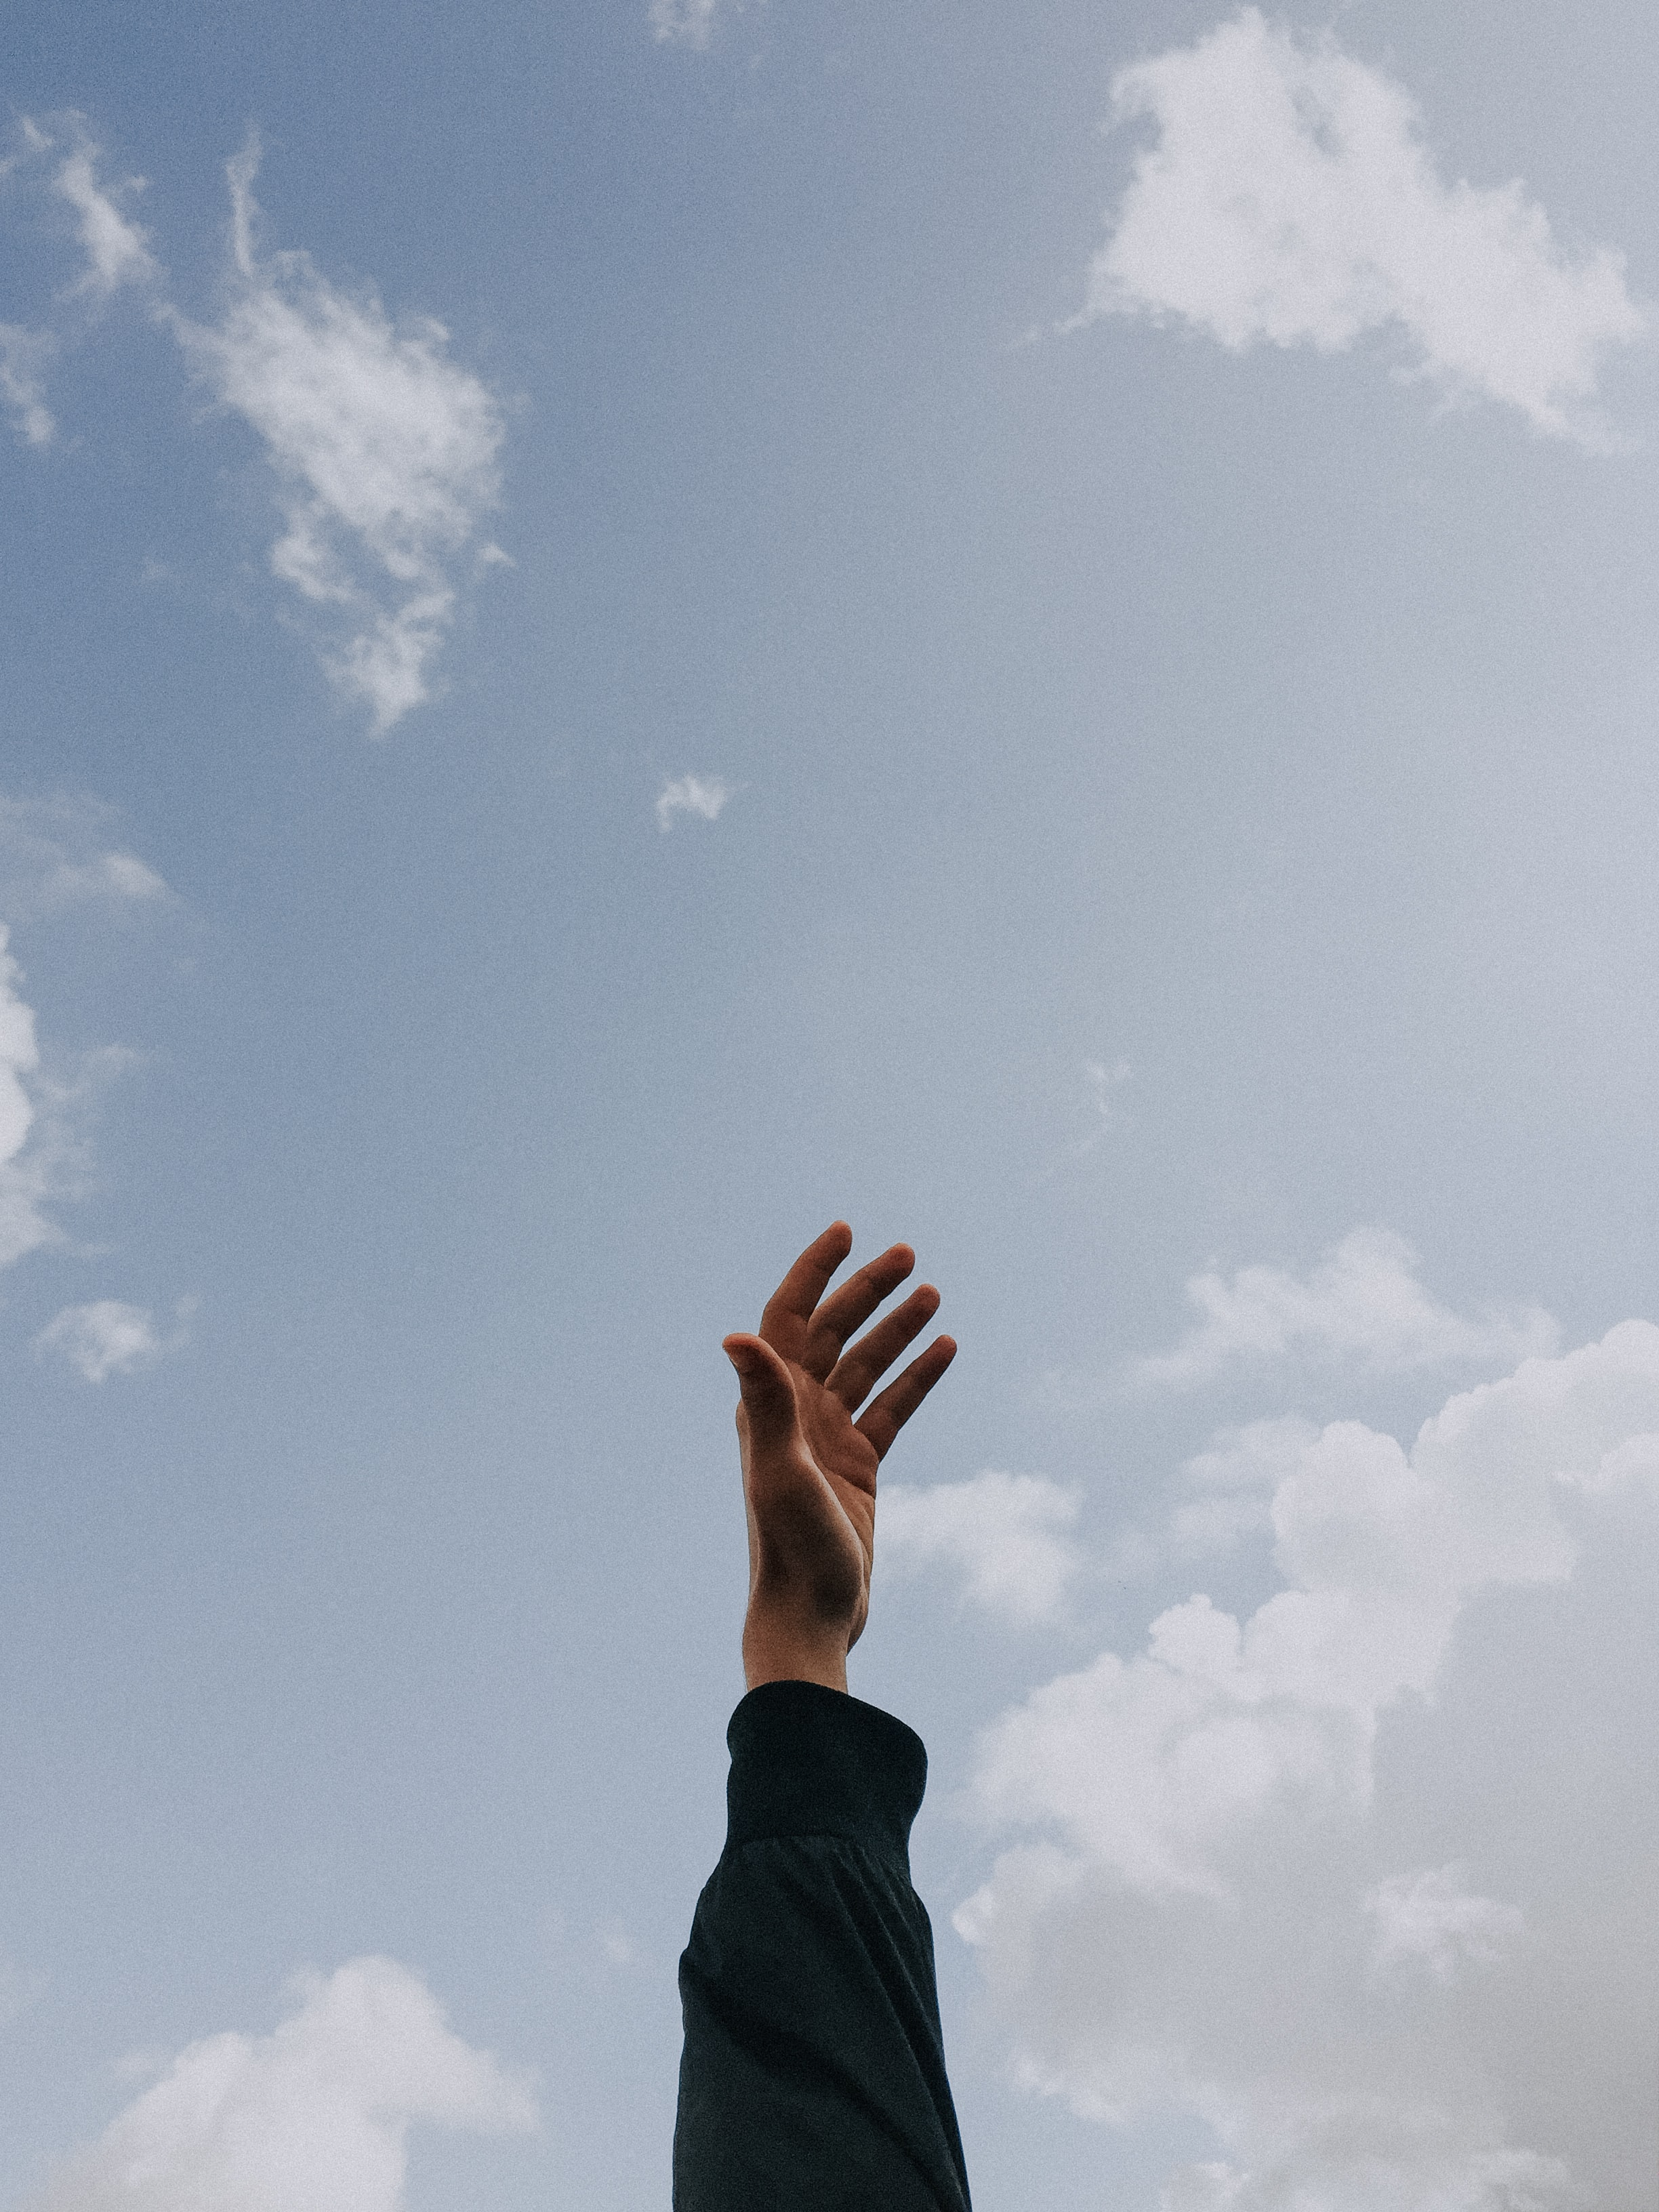 person raising left hand under cloudy sky at daytime